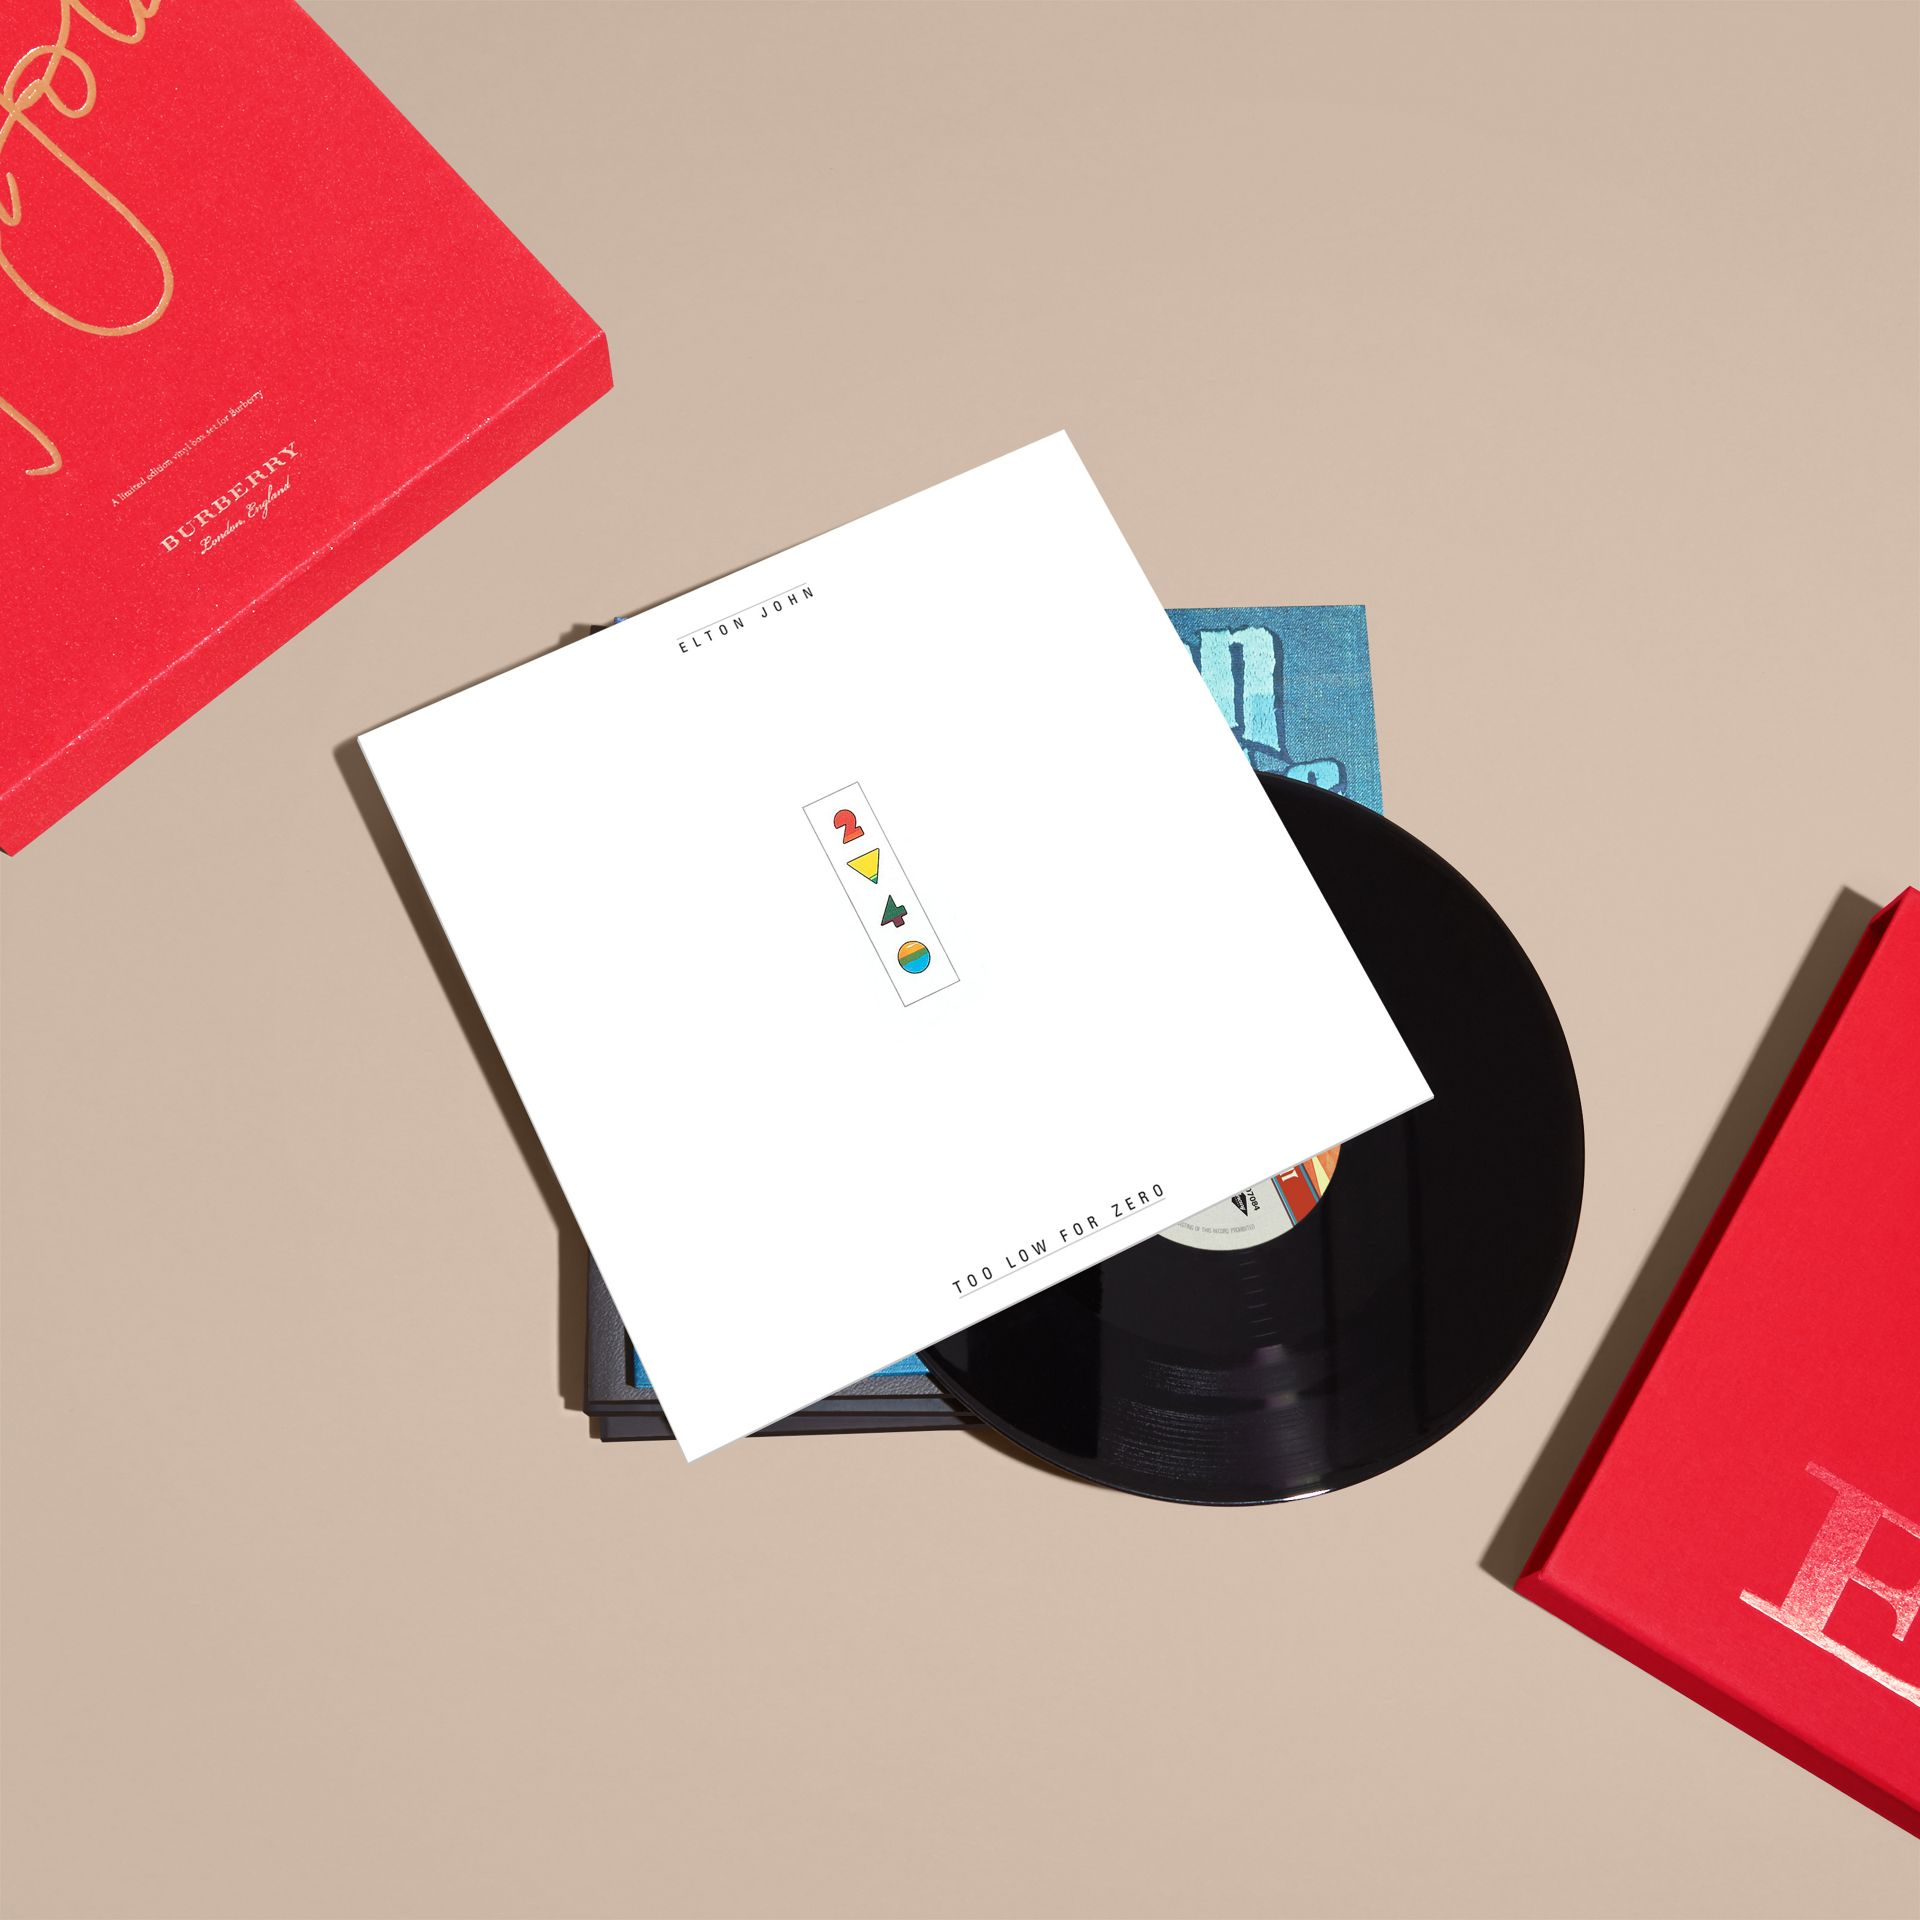 Multicolour Elton John: A Limited Edition Vinyl Box Set for Burberry - gallery image 7